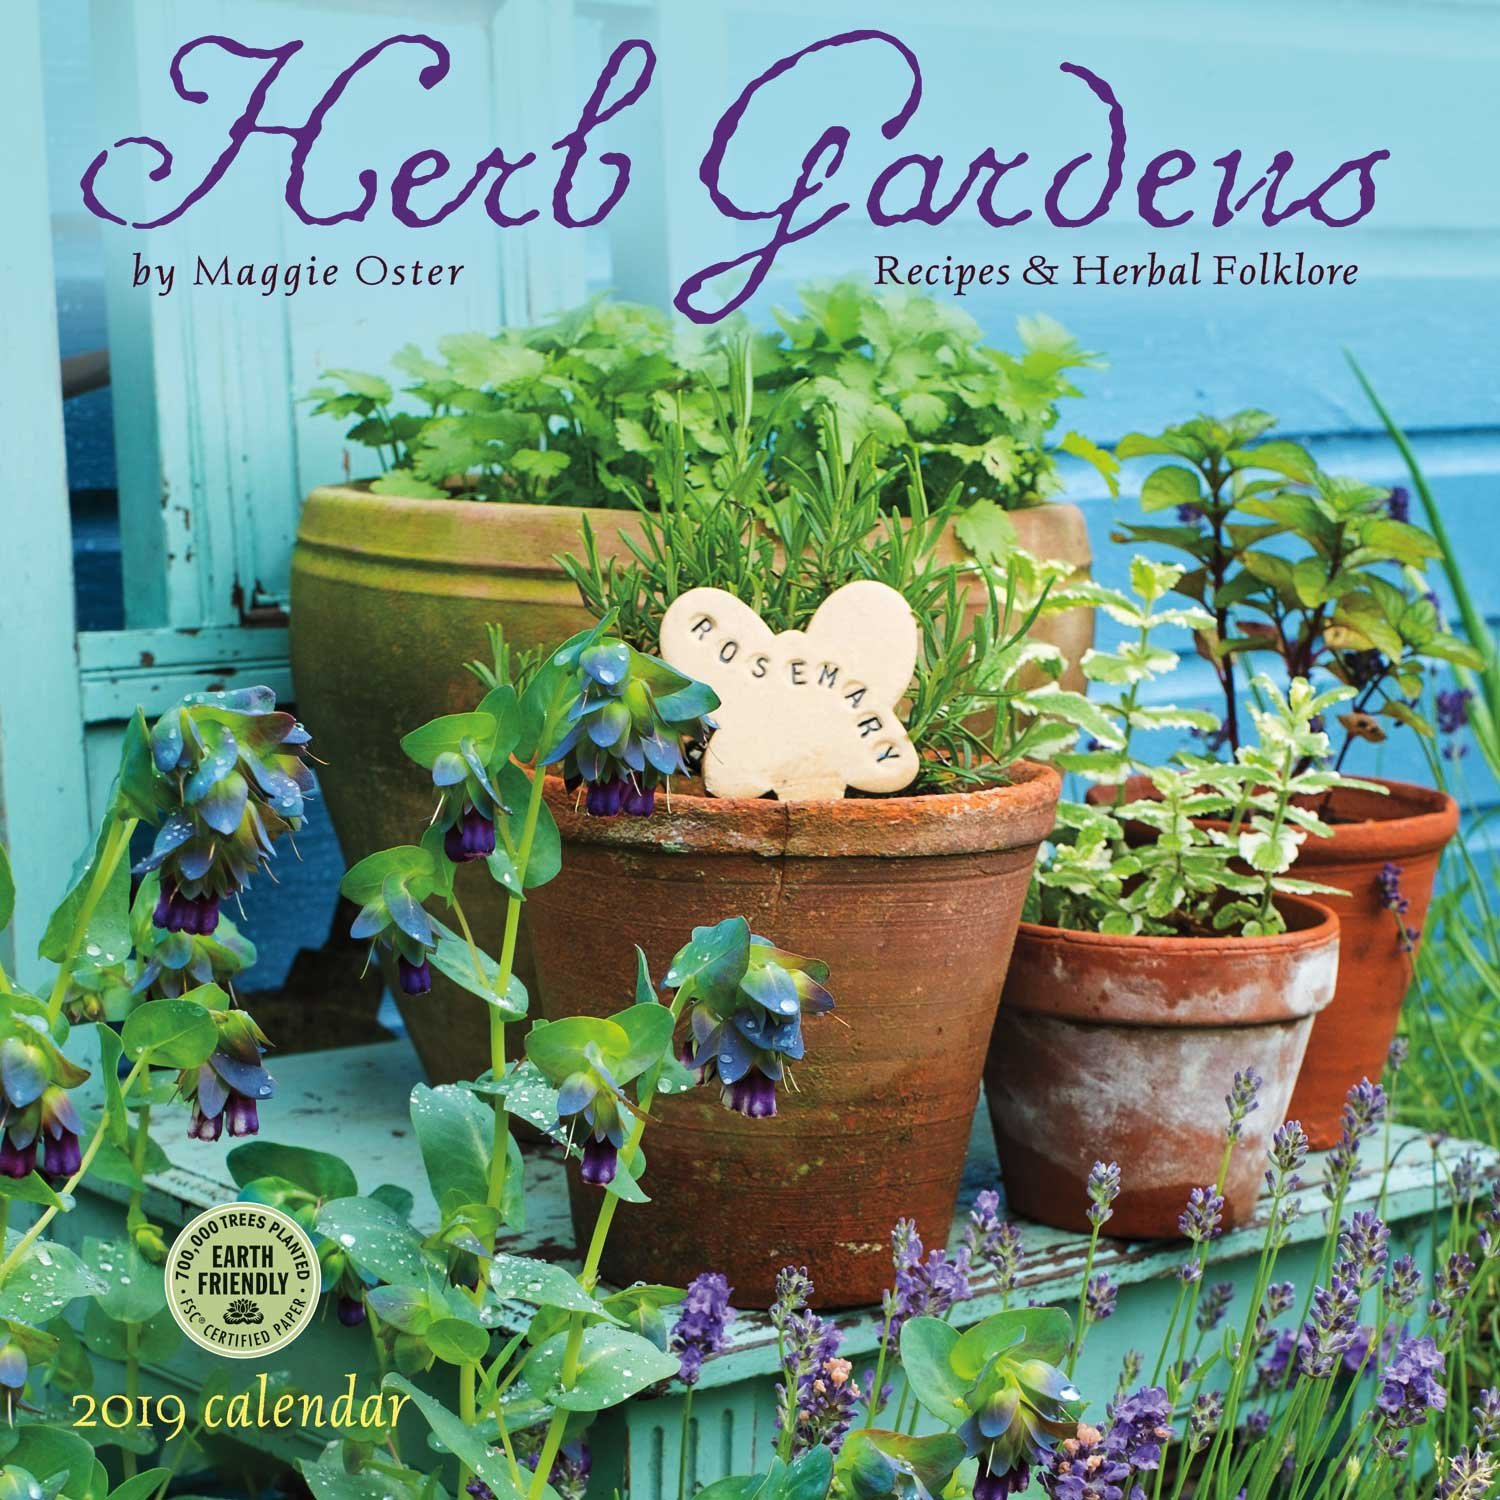 Herb Gardens 2019 Wall Calendar: Recipes & Herbal Folklore Calendar – Wall Calendar, June 19, 2018 Maggie Oster Amber Lotus Publishing 1631364103 Gardening